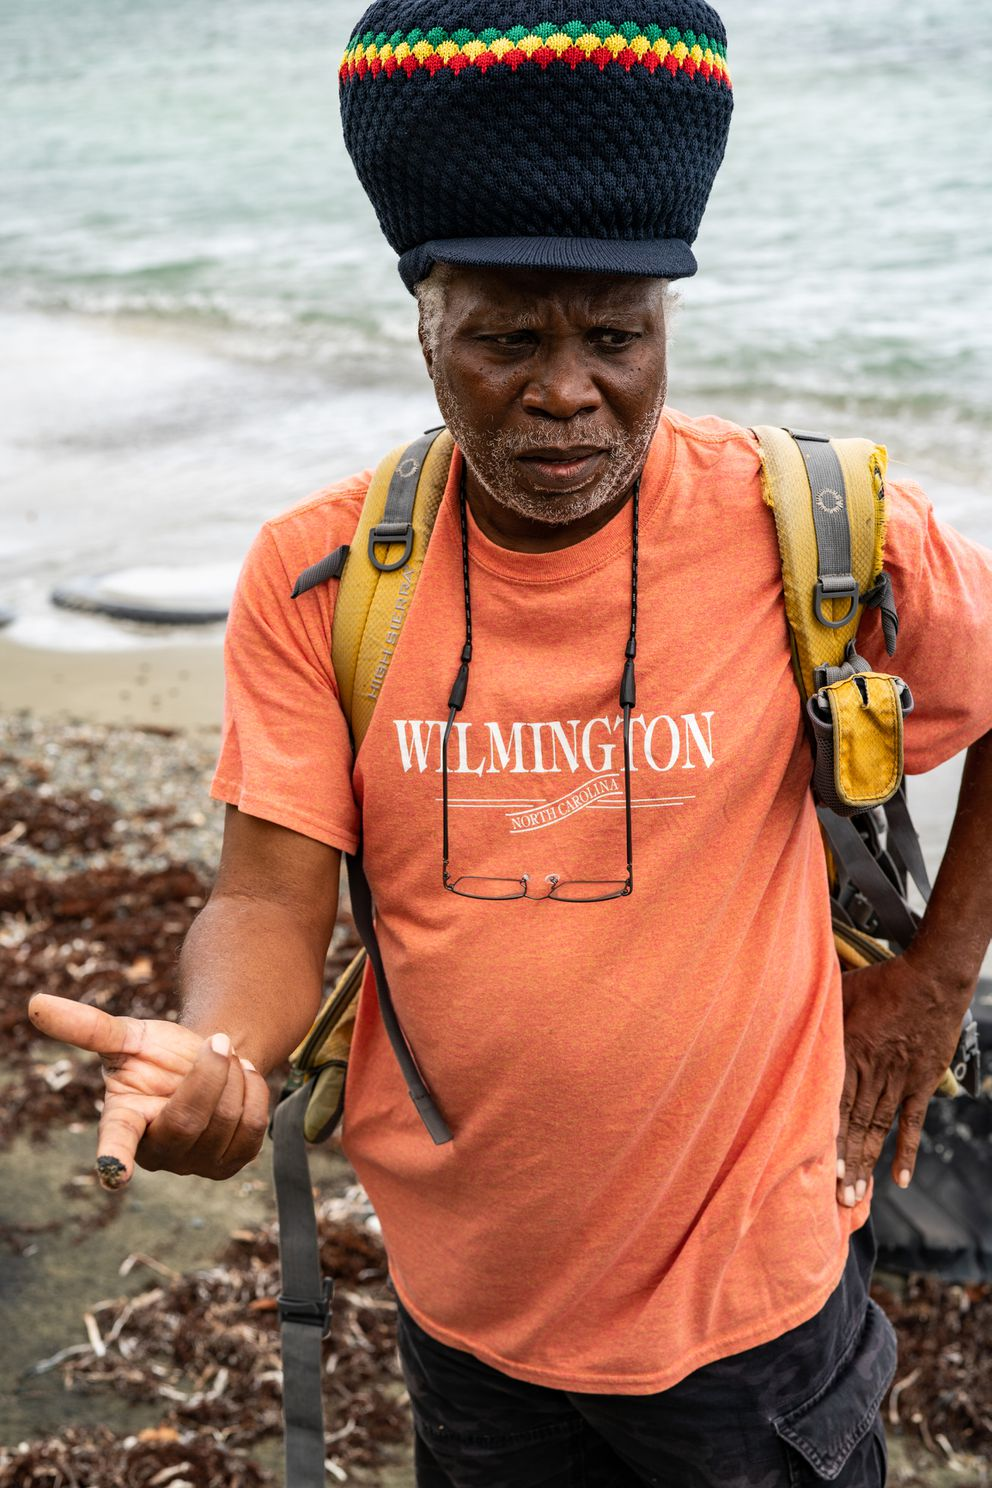 Olasee Davis, a professor of ecology and environmental preservation at the University of Virgin Islands, holds a sample of sand covered in oil near the Limetree Bay refinery in St. Croix on Wednesday, March 17, 2021. (Washington Post photo by Salwan Georges)